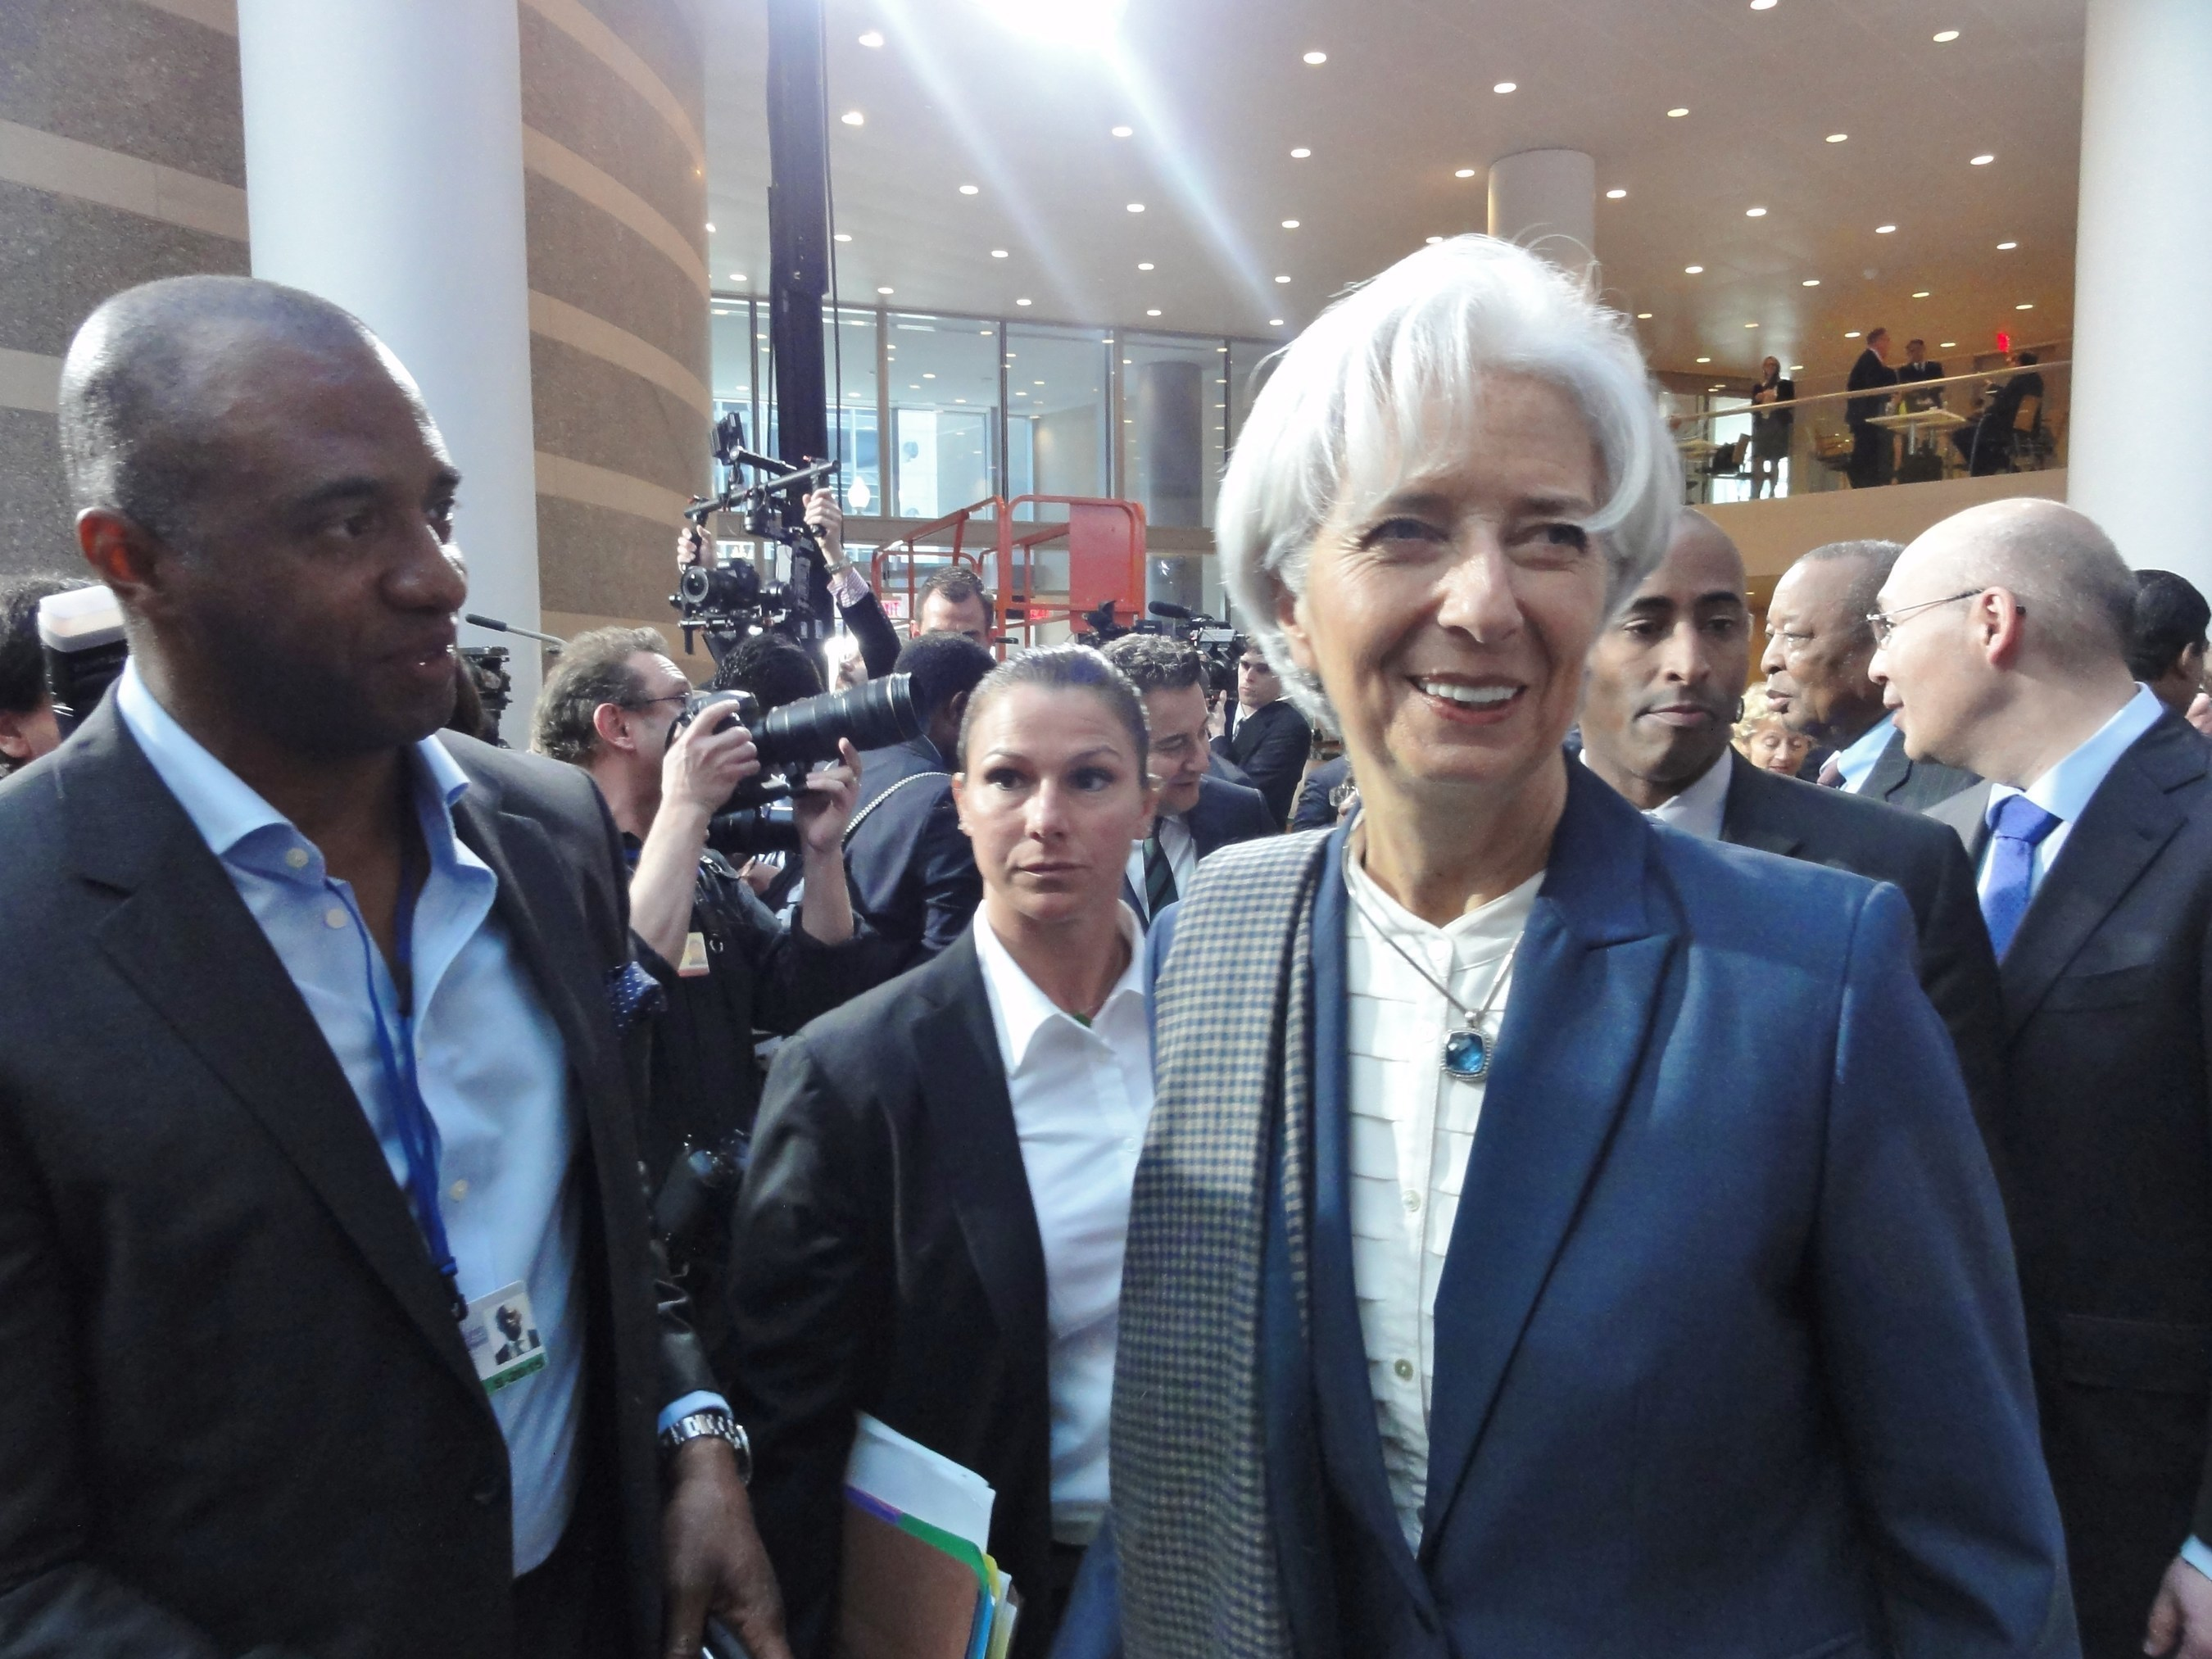 AIA Group Chairman Shawn Baldwin joins International Monetary Fund Managing Director Christine Lagarde at the 2015 IMF and World Bank spring meetings in Washington, D.C.